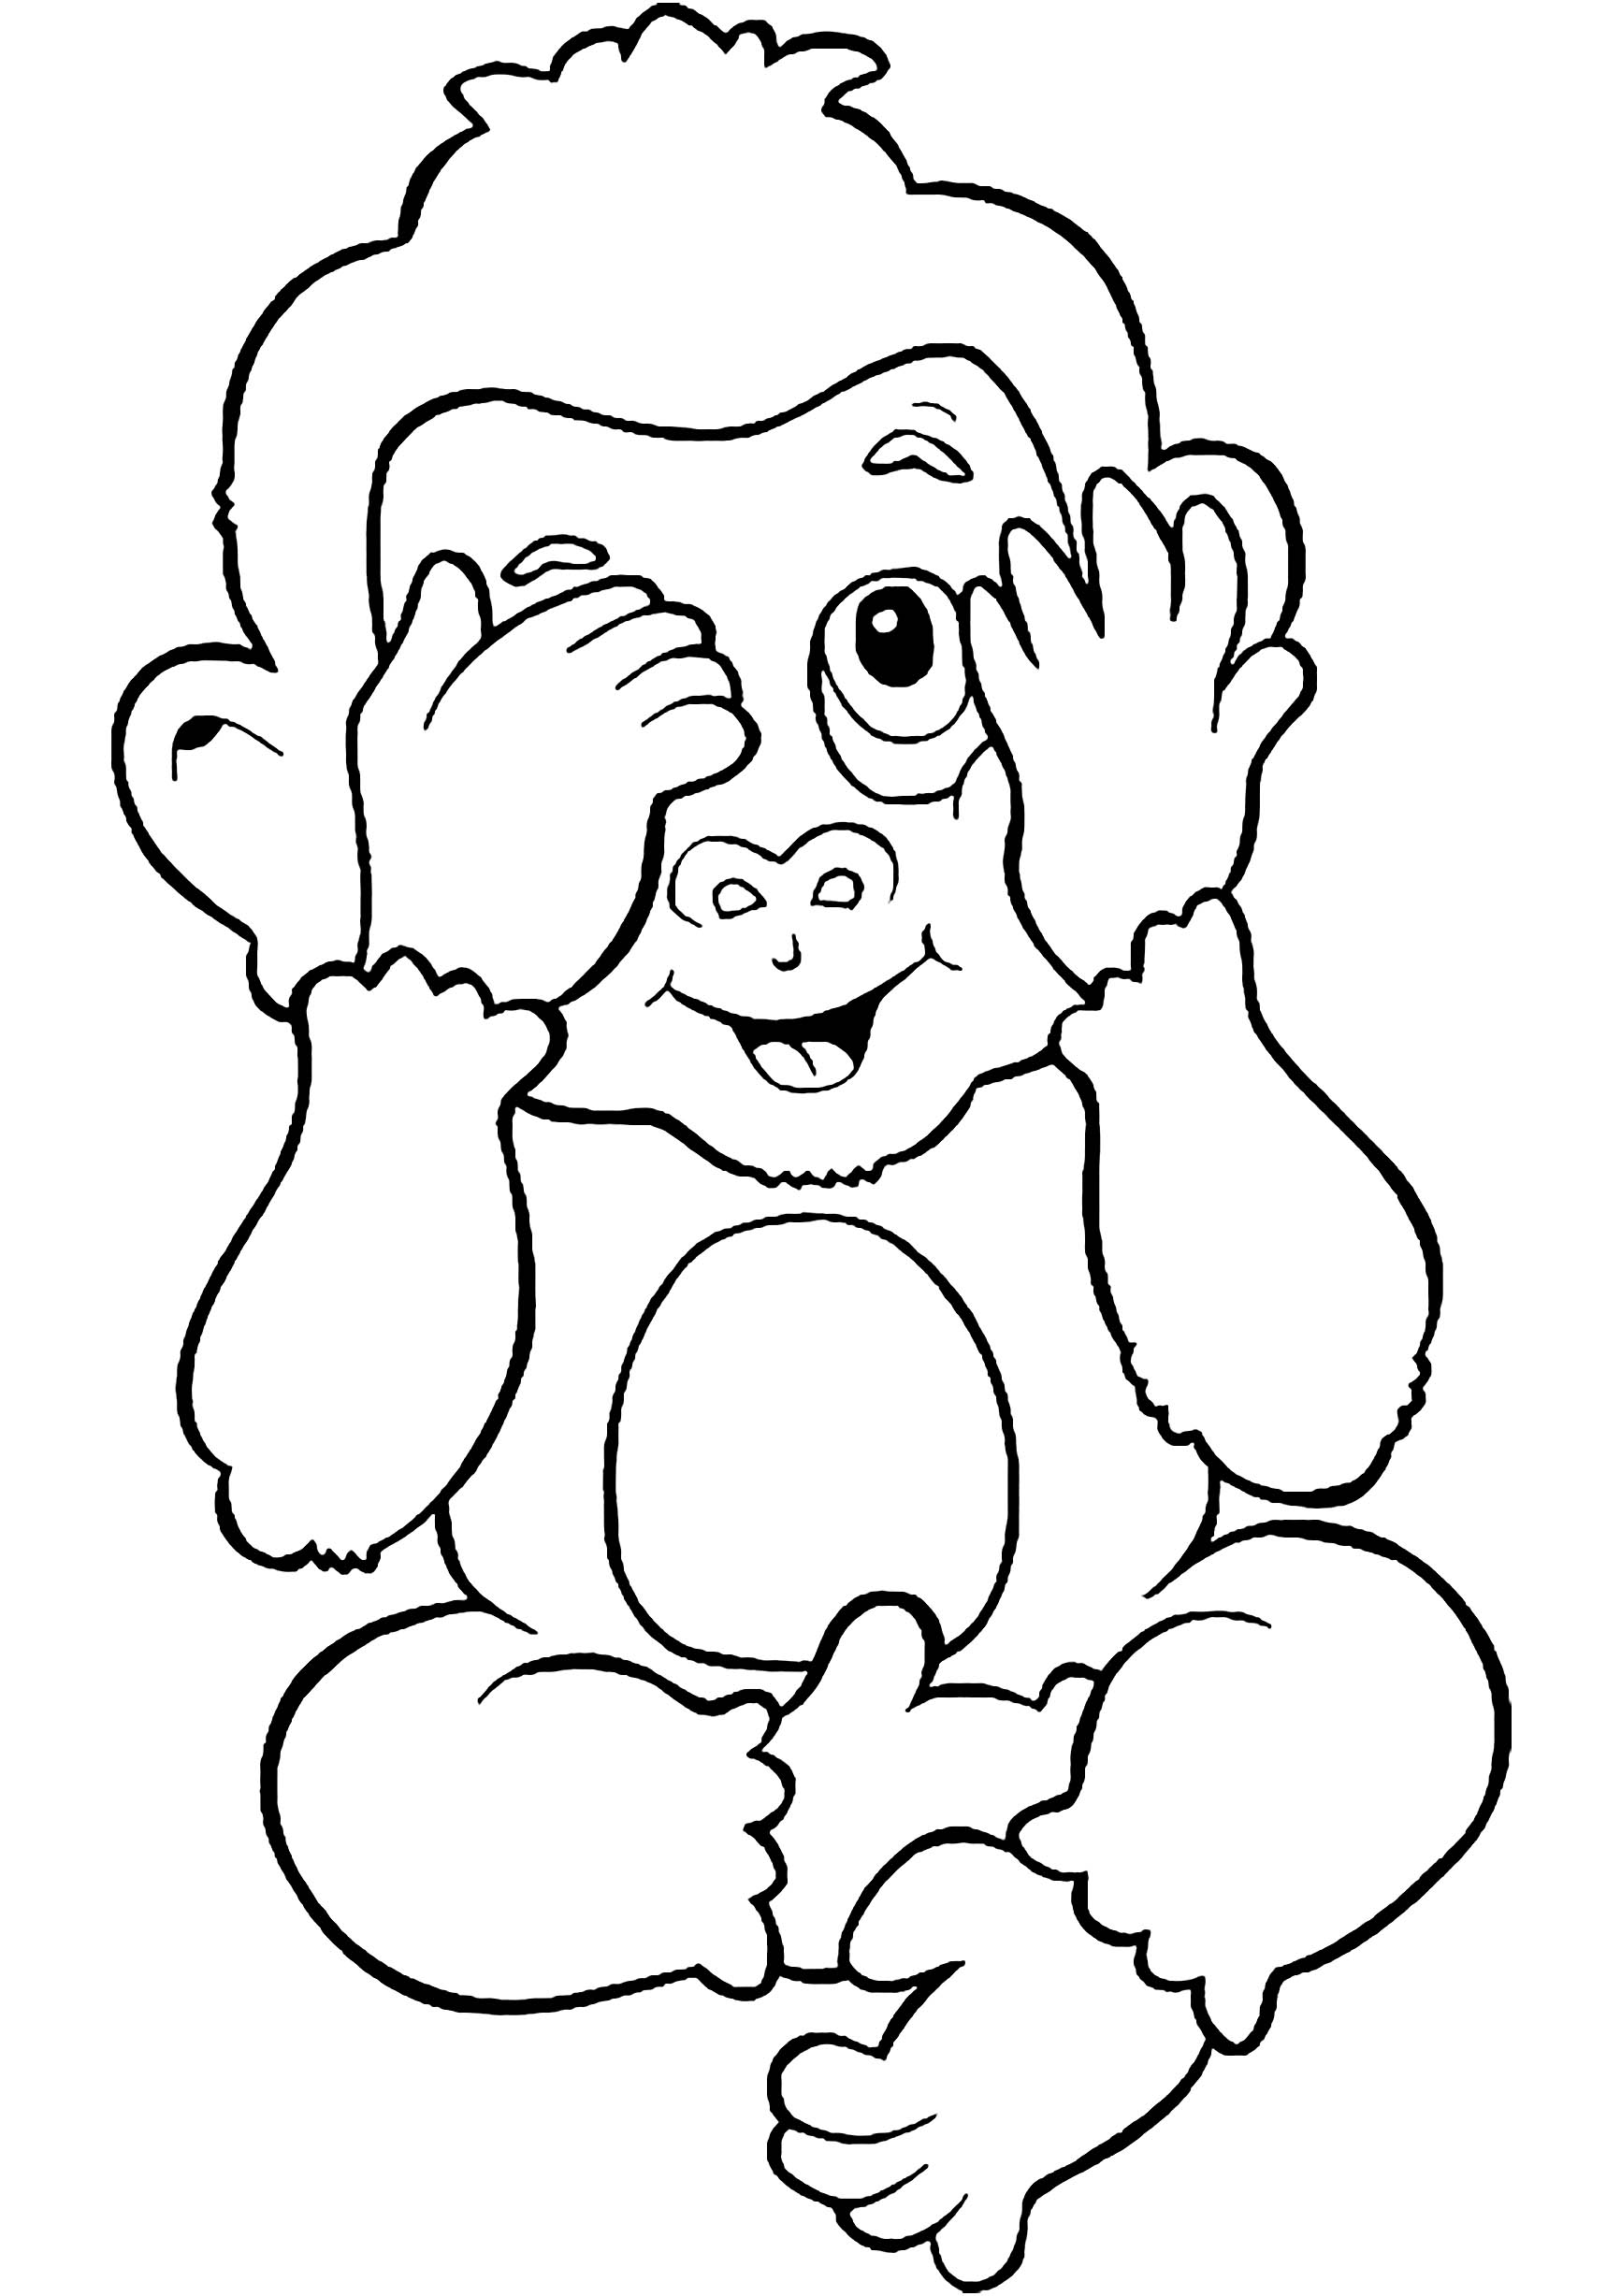 coloring monkey printable cute coloring pages getcoloringpagescom monkey printable coloring